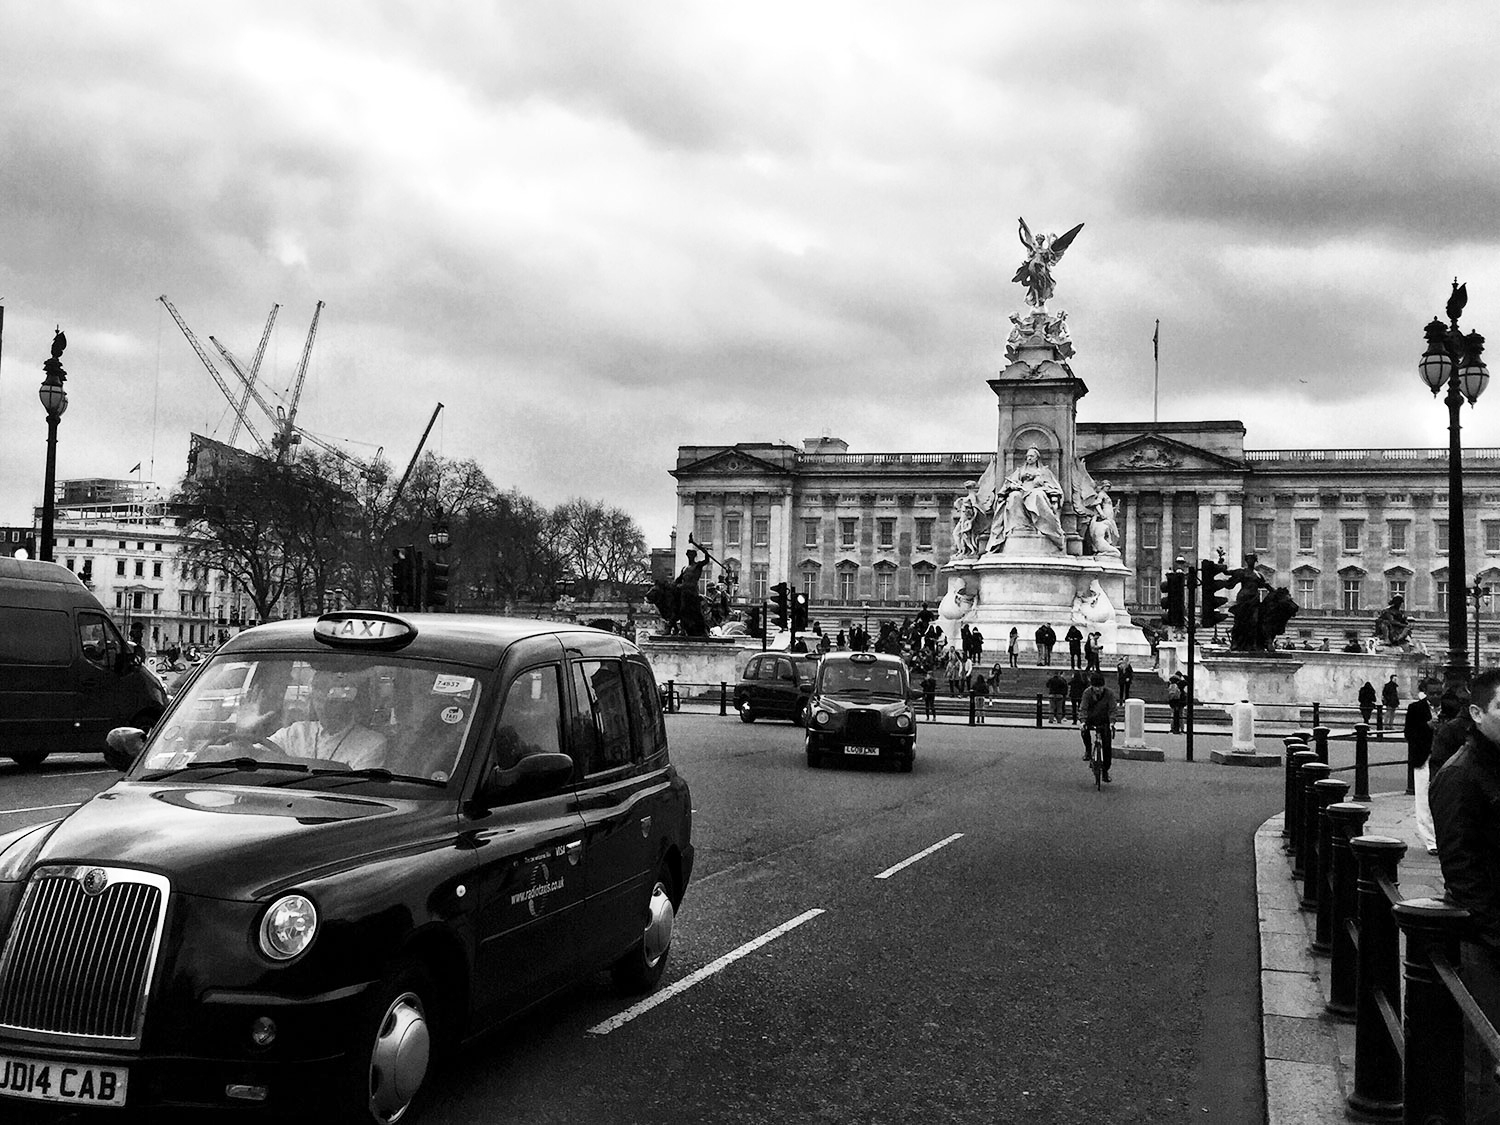 Buckingham Palace. March 2016